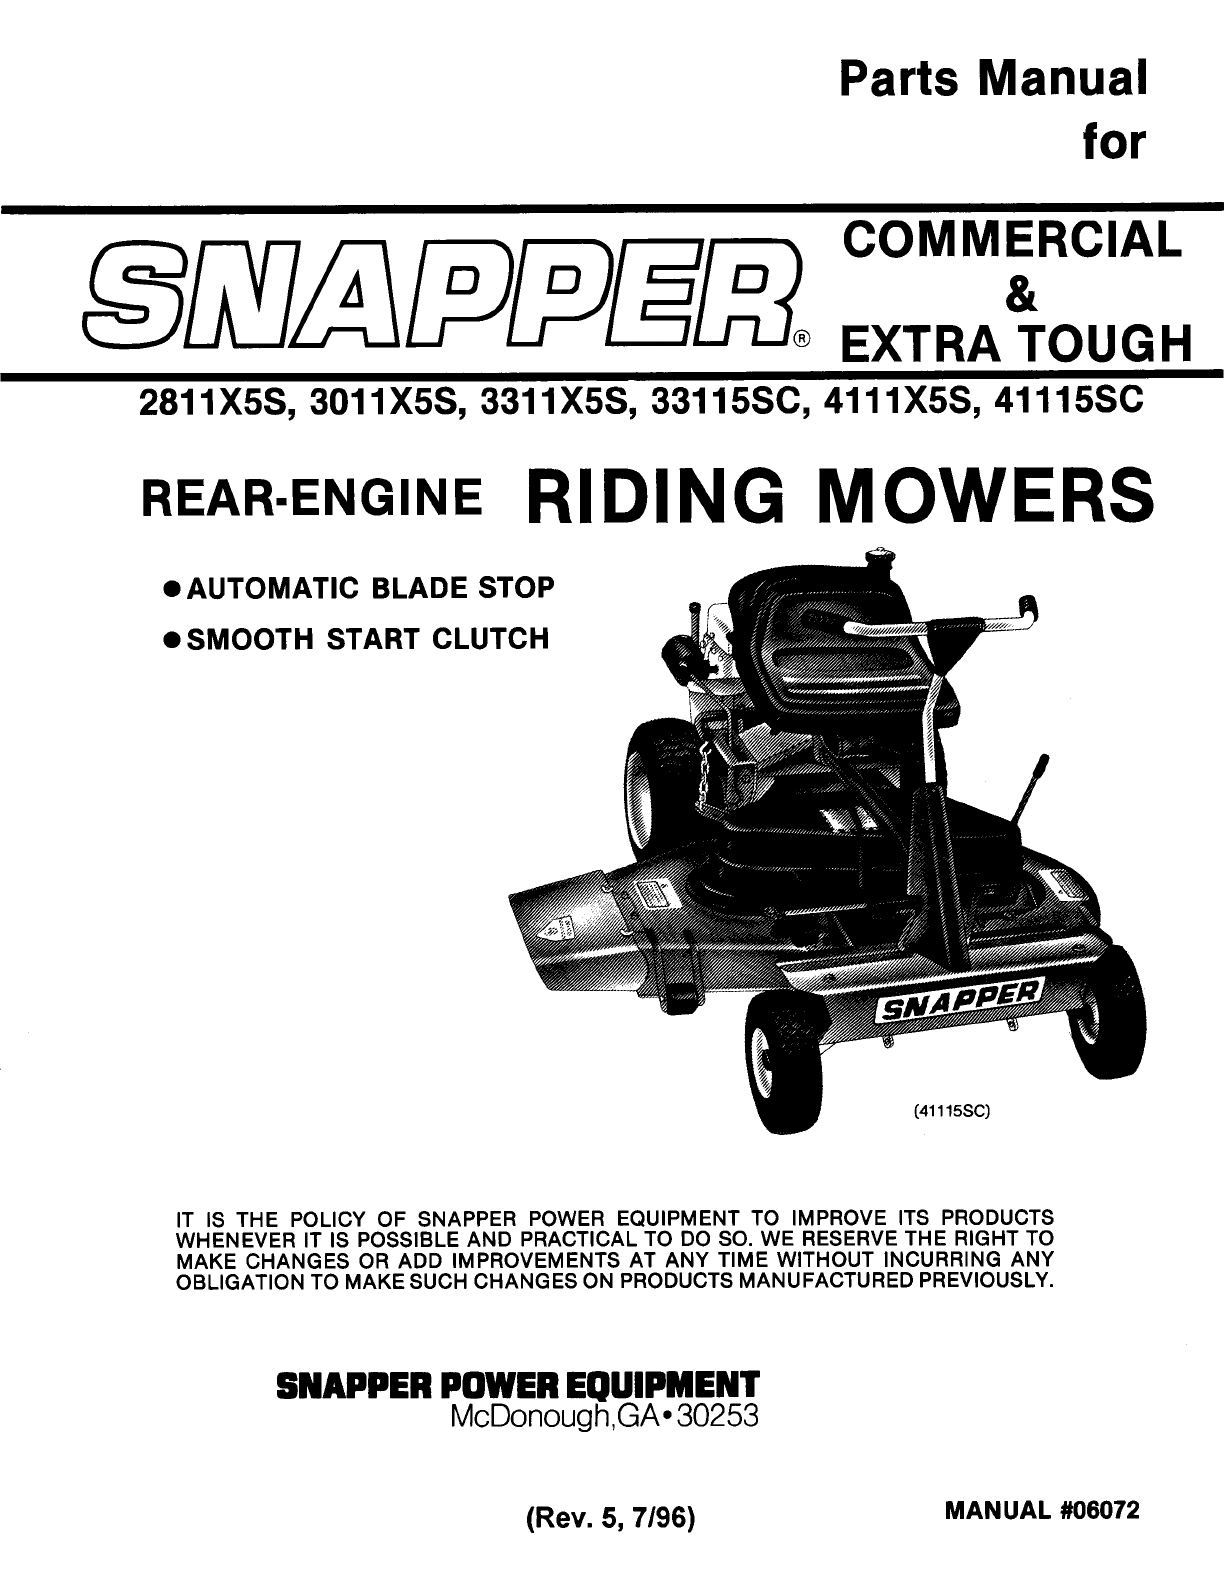 84e07184 30ec 4302 b856 842ecf9c9b3f bg1 snapper lawn mower 2811x5s user guide manualsonline com wiring diagram for rear engine snapper mower at bakdesigns.co